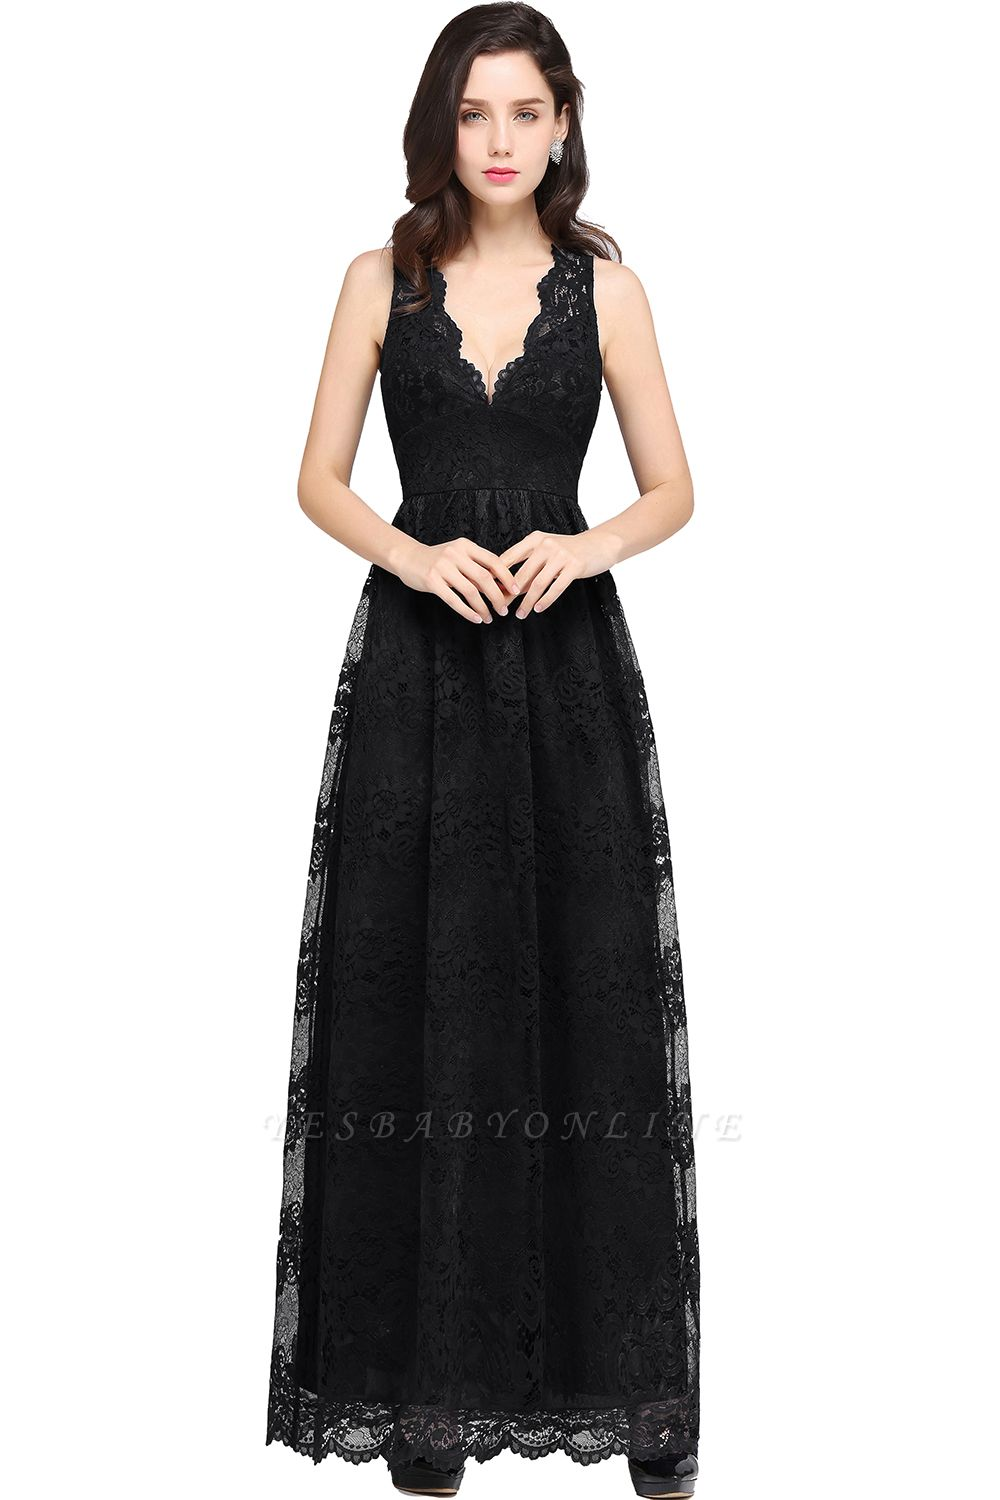 CHAYA | Sheath V-neck Floor-length Navy Blue Lace Prom Dress